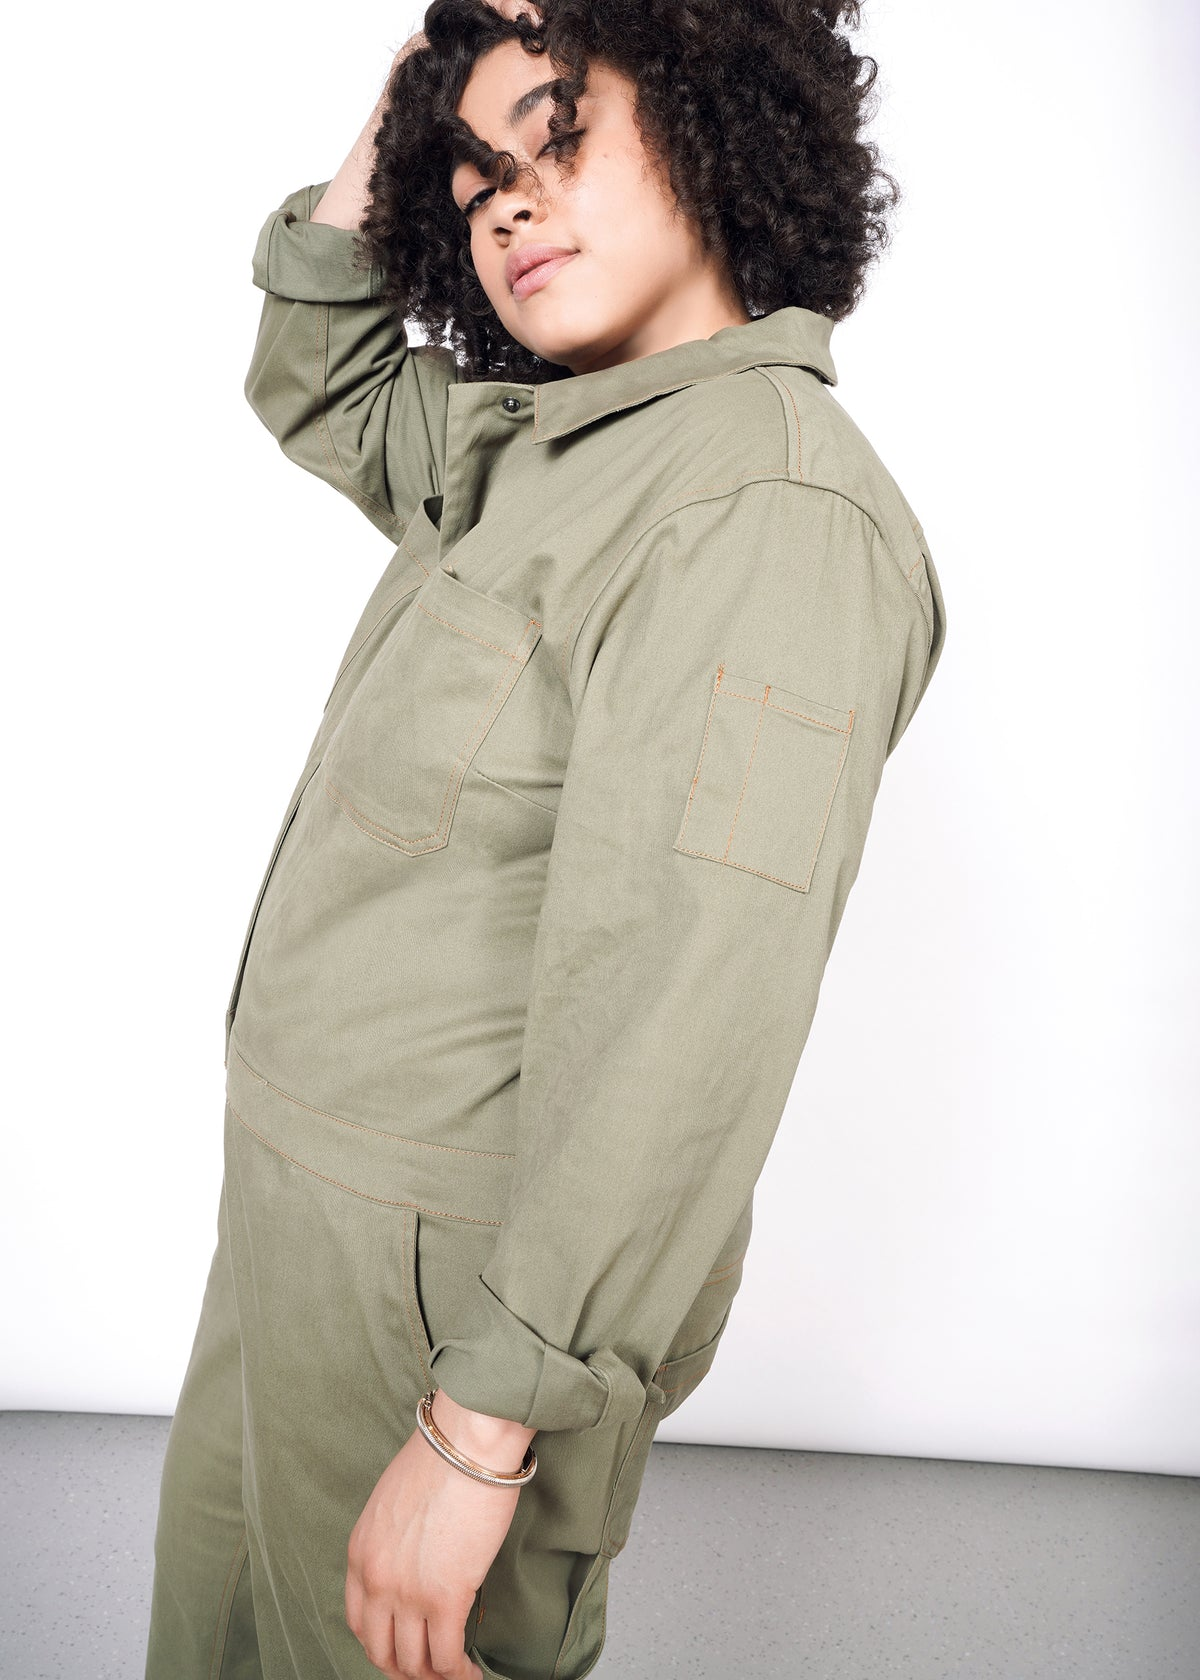 Profile view of curly haired model wearing olive long sleeve coveralls, showing the pocked and orange stitching on sleeve